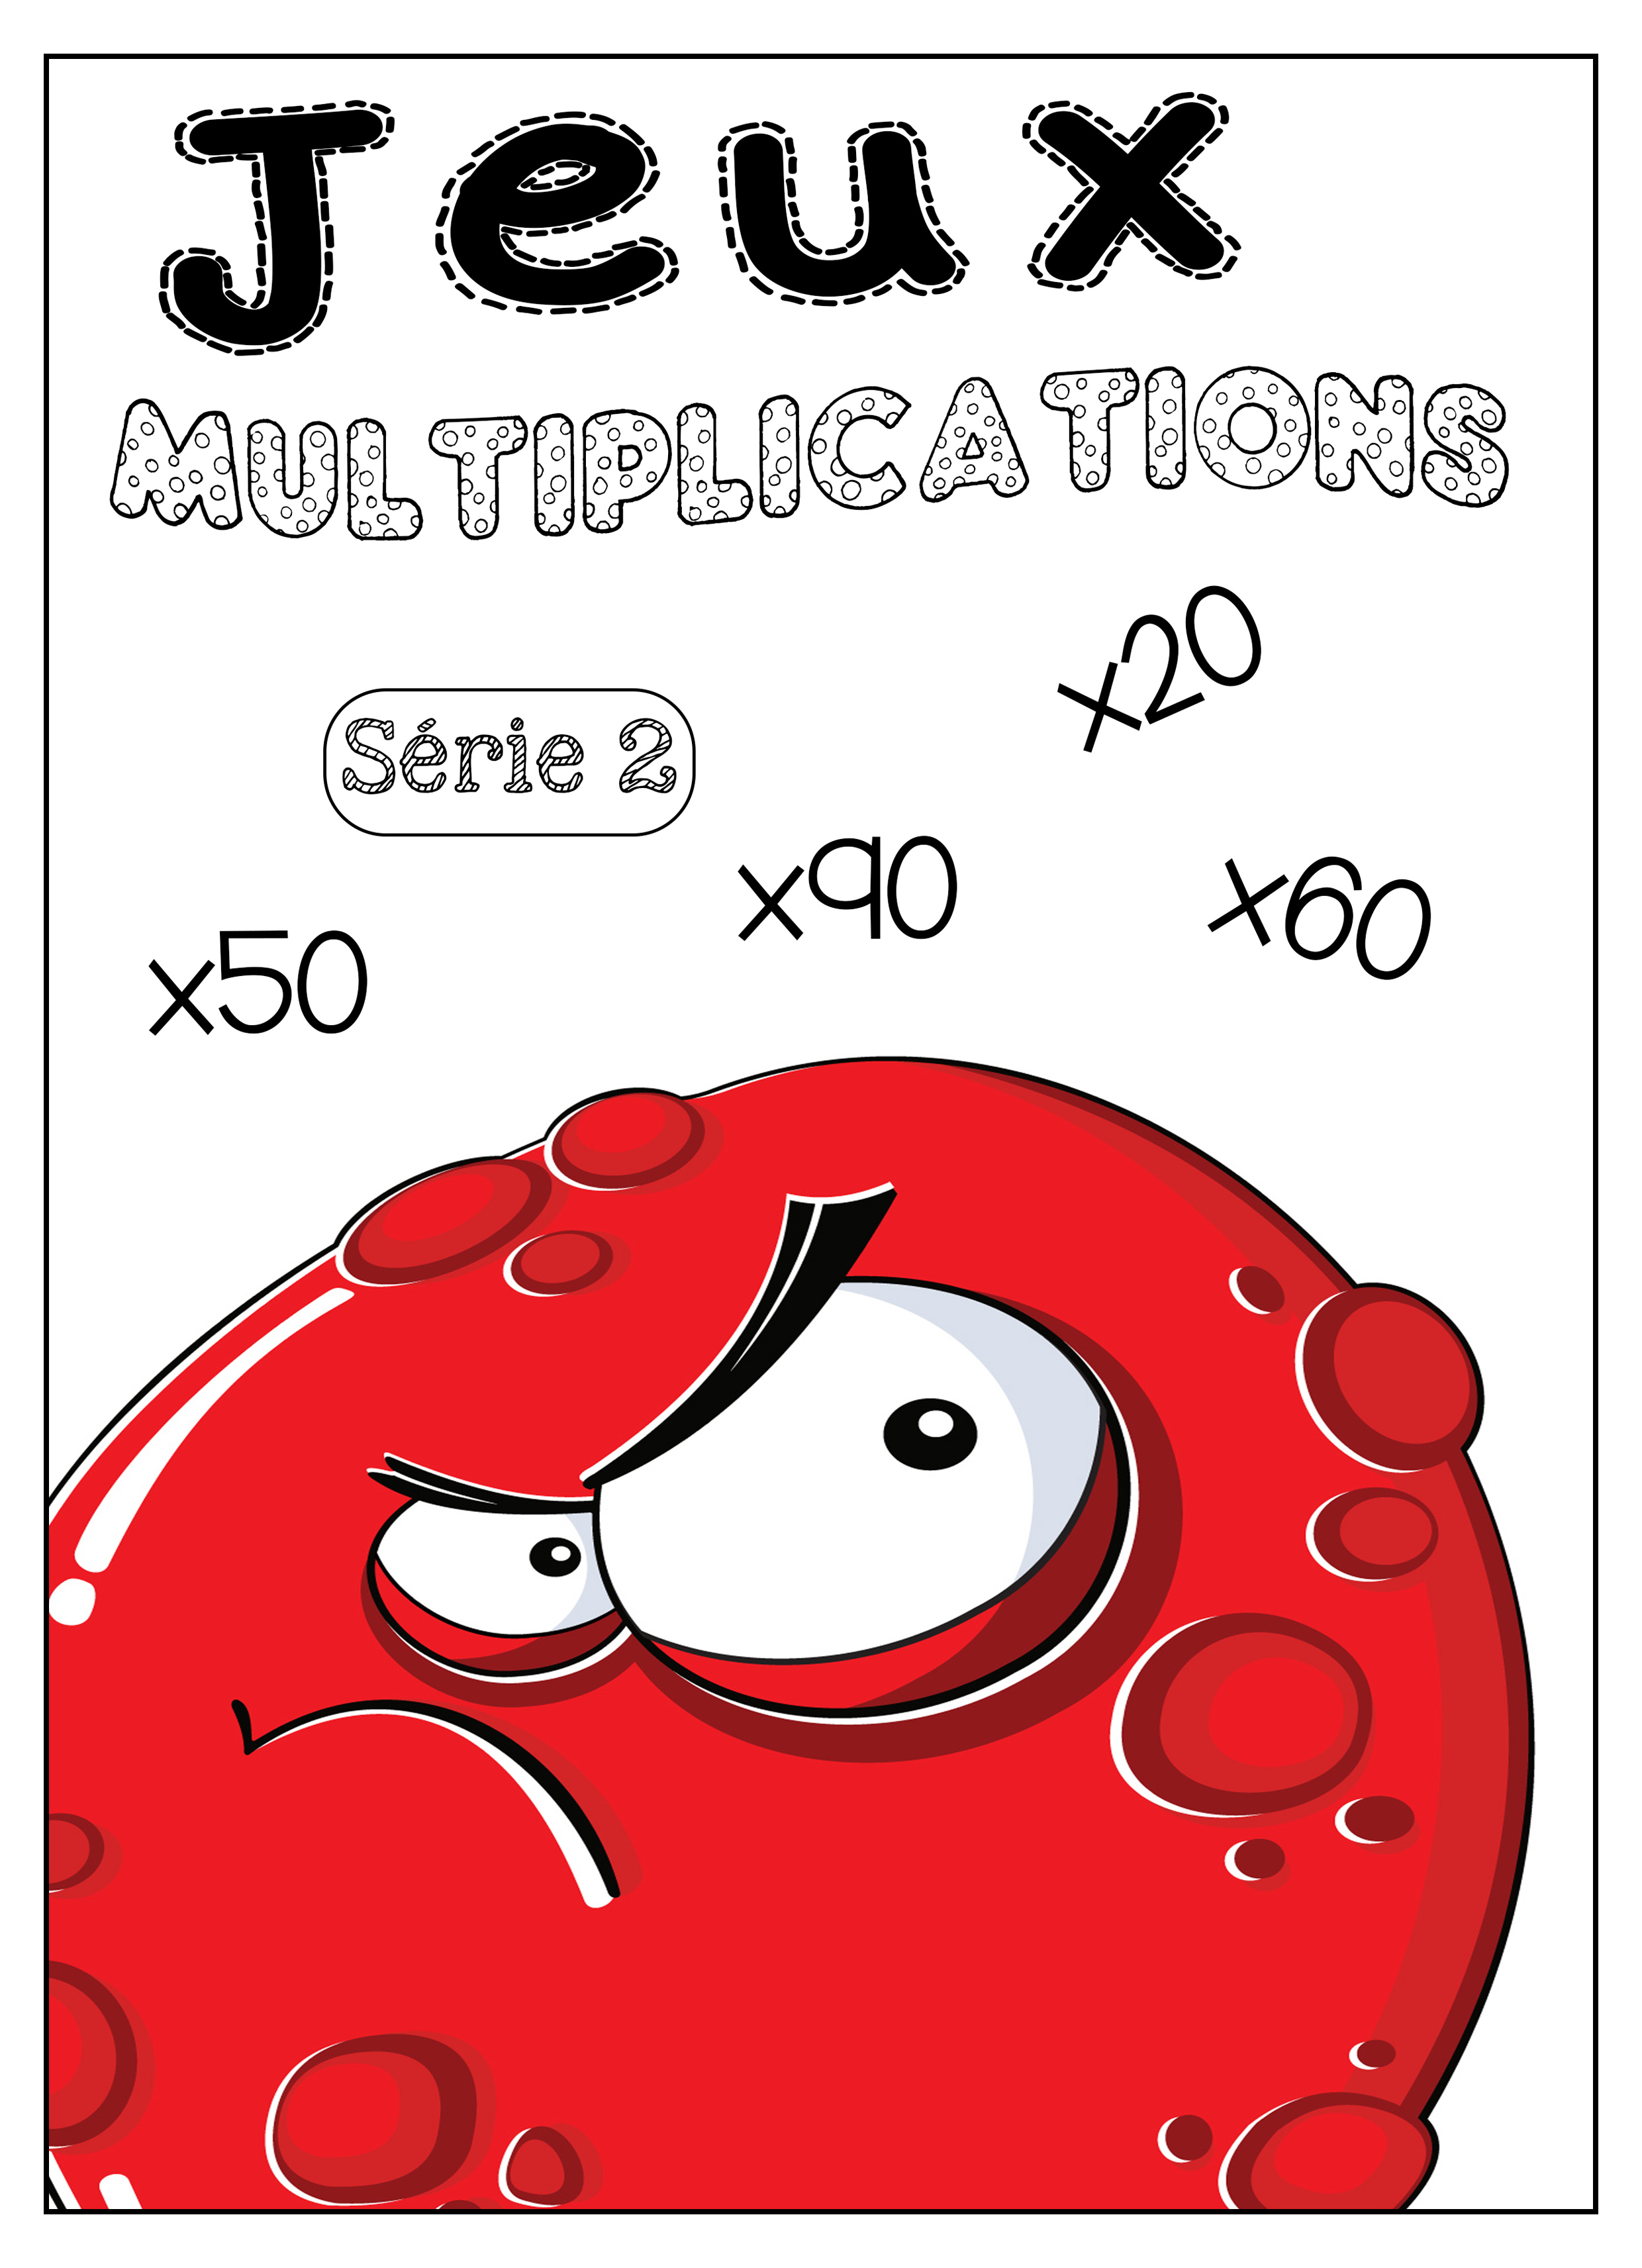 Jeux tables de multiplication un monde meilleur for Les tables de multiplication en ligne